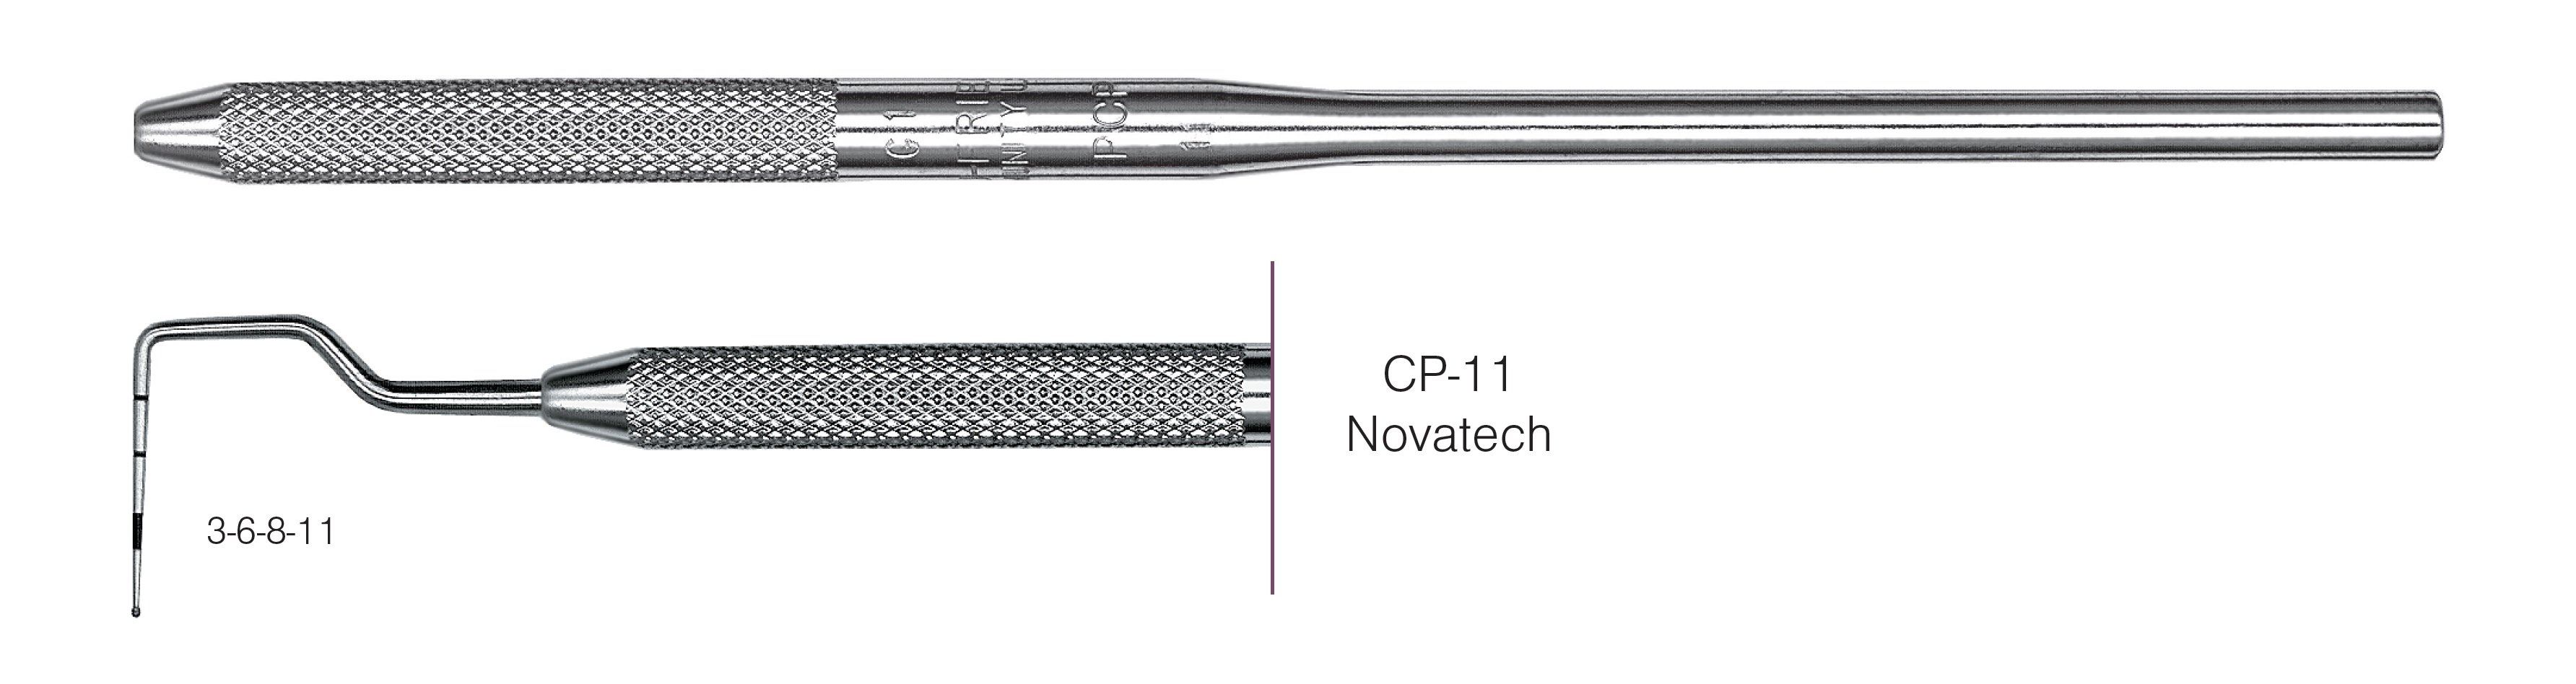 HF-PCPNT11-30, Novatech Screening Probe* CP-11, Black markings, 3-6-8-11 mm, Handle round, Single End